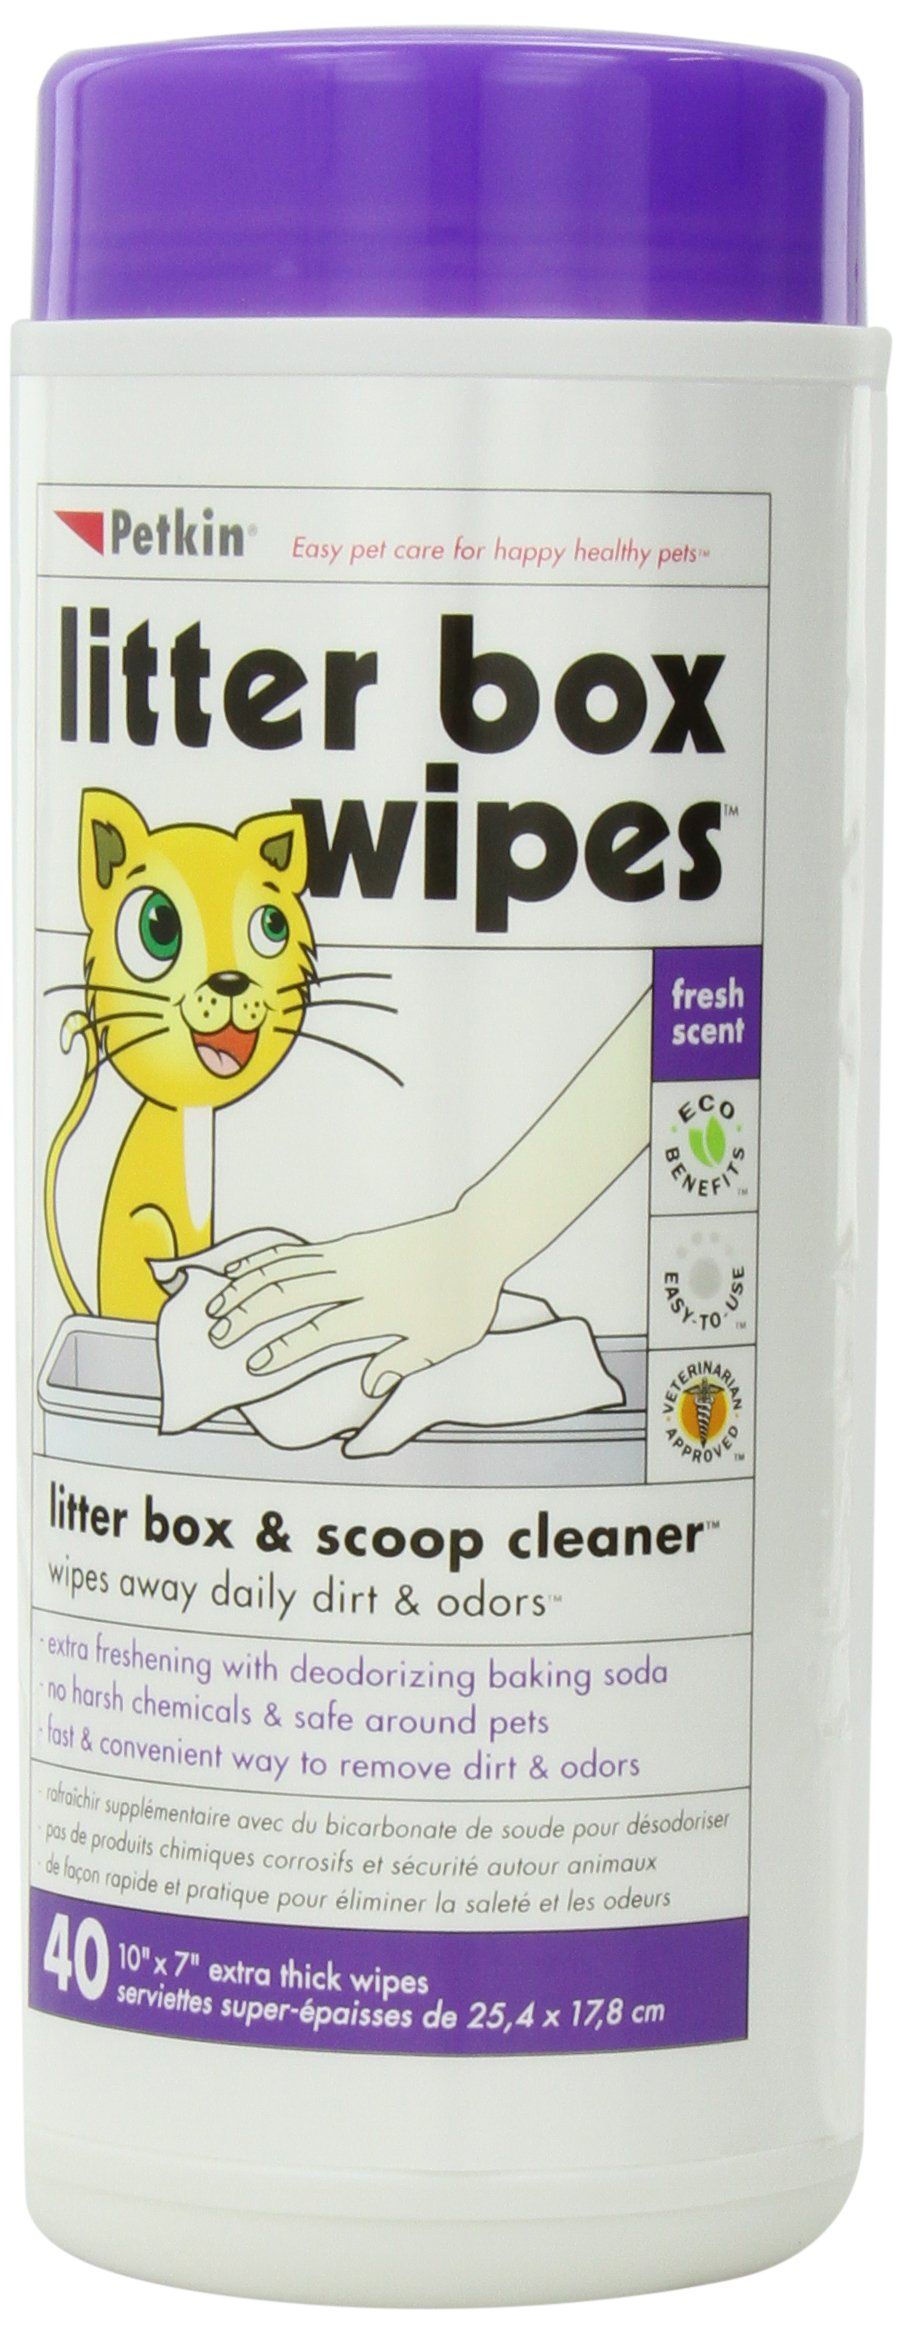 Petkin Litter Box Wipes, 40-Count (Pack of 4)